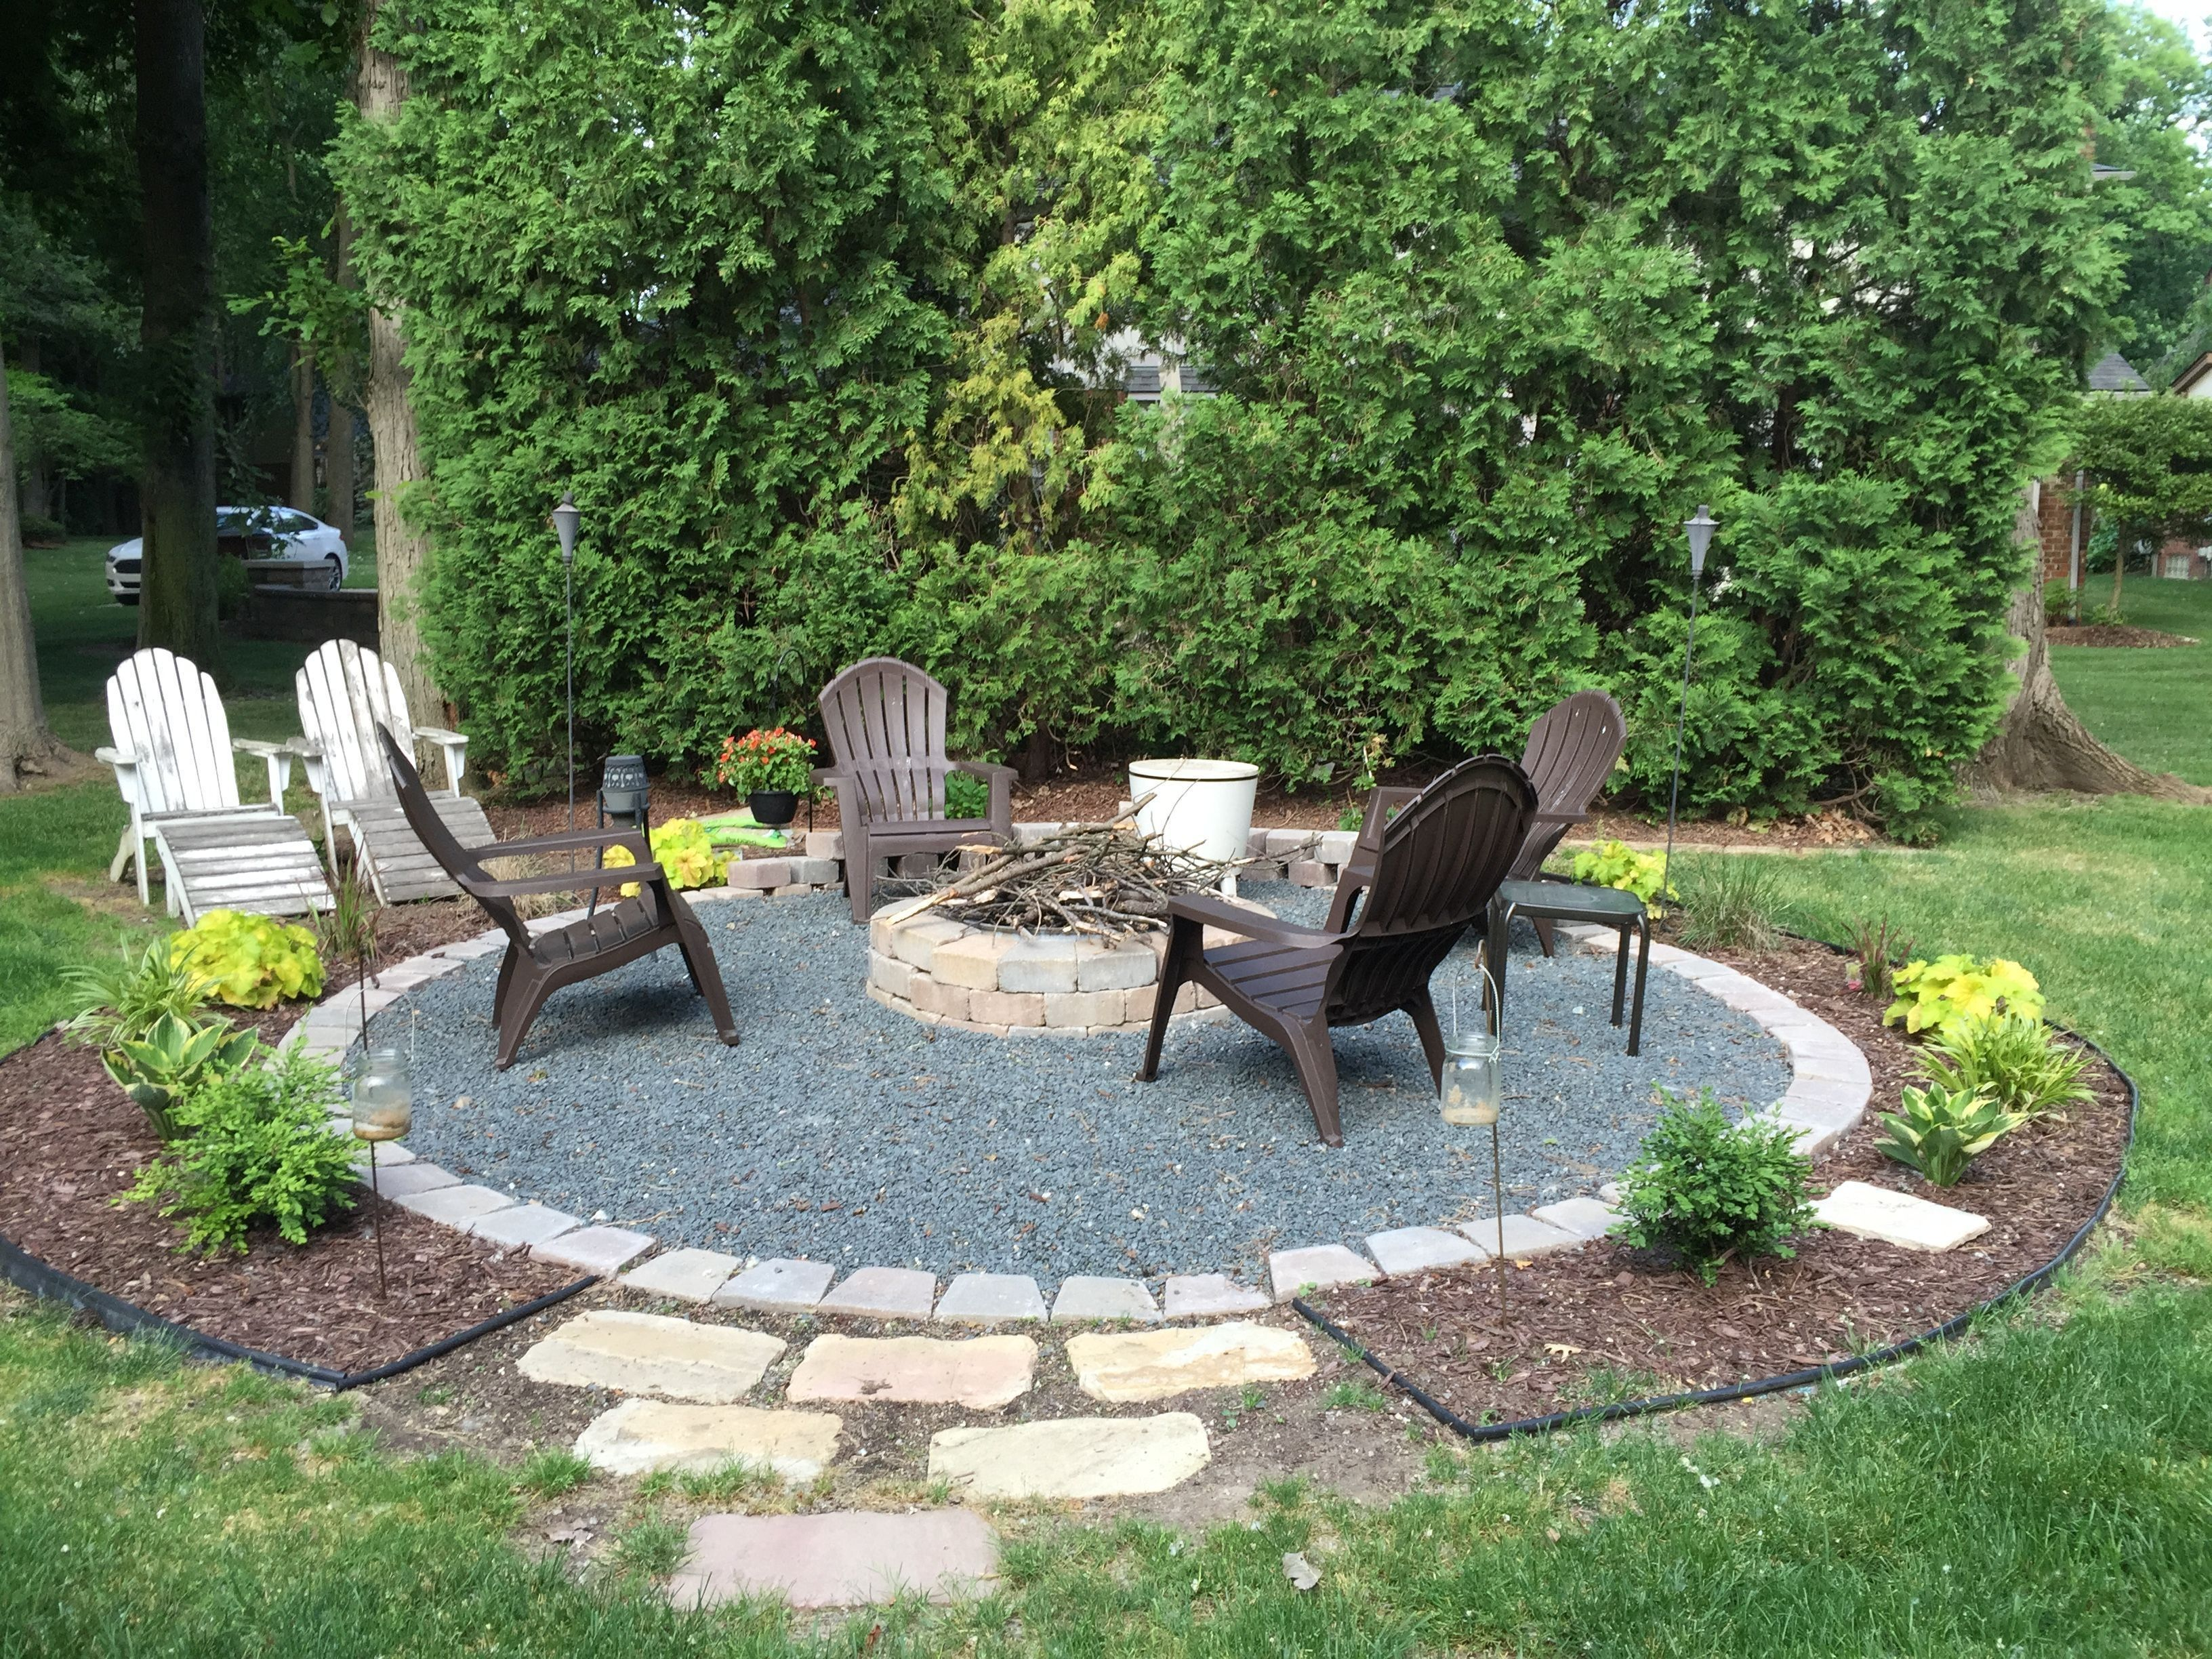 64 DIY Small Firepit Ideas for Outdoor To Wram Family ... on Garden Ideas With Fire Pit id=50780